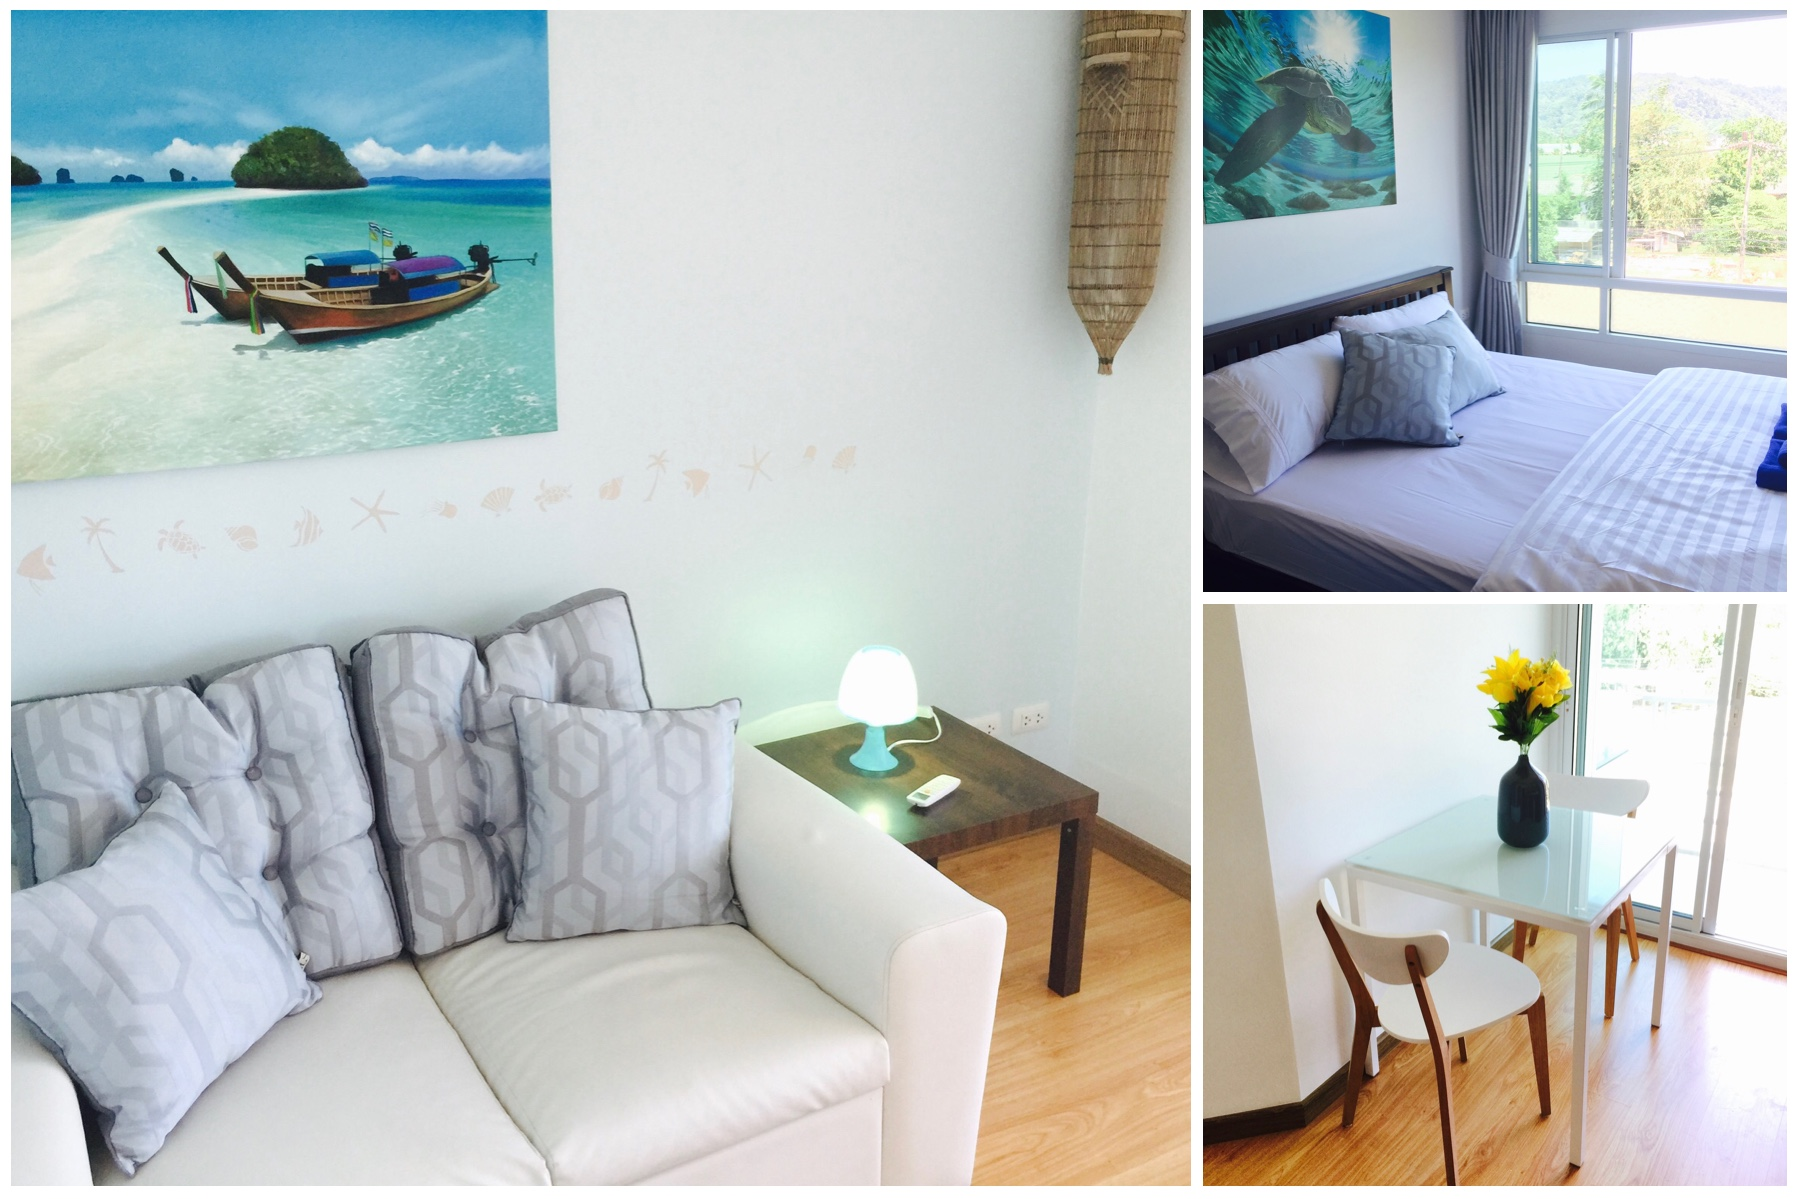 Beachy & Cosy One Bedroom Condo for rent in Phuket